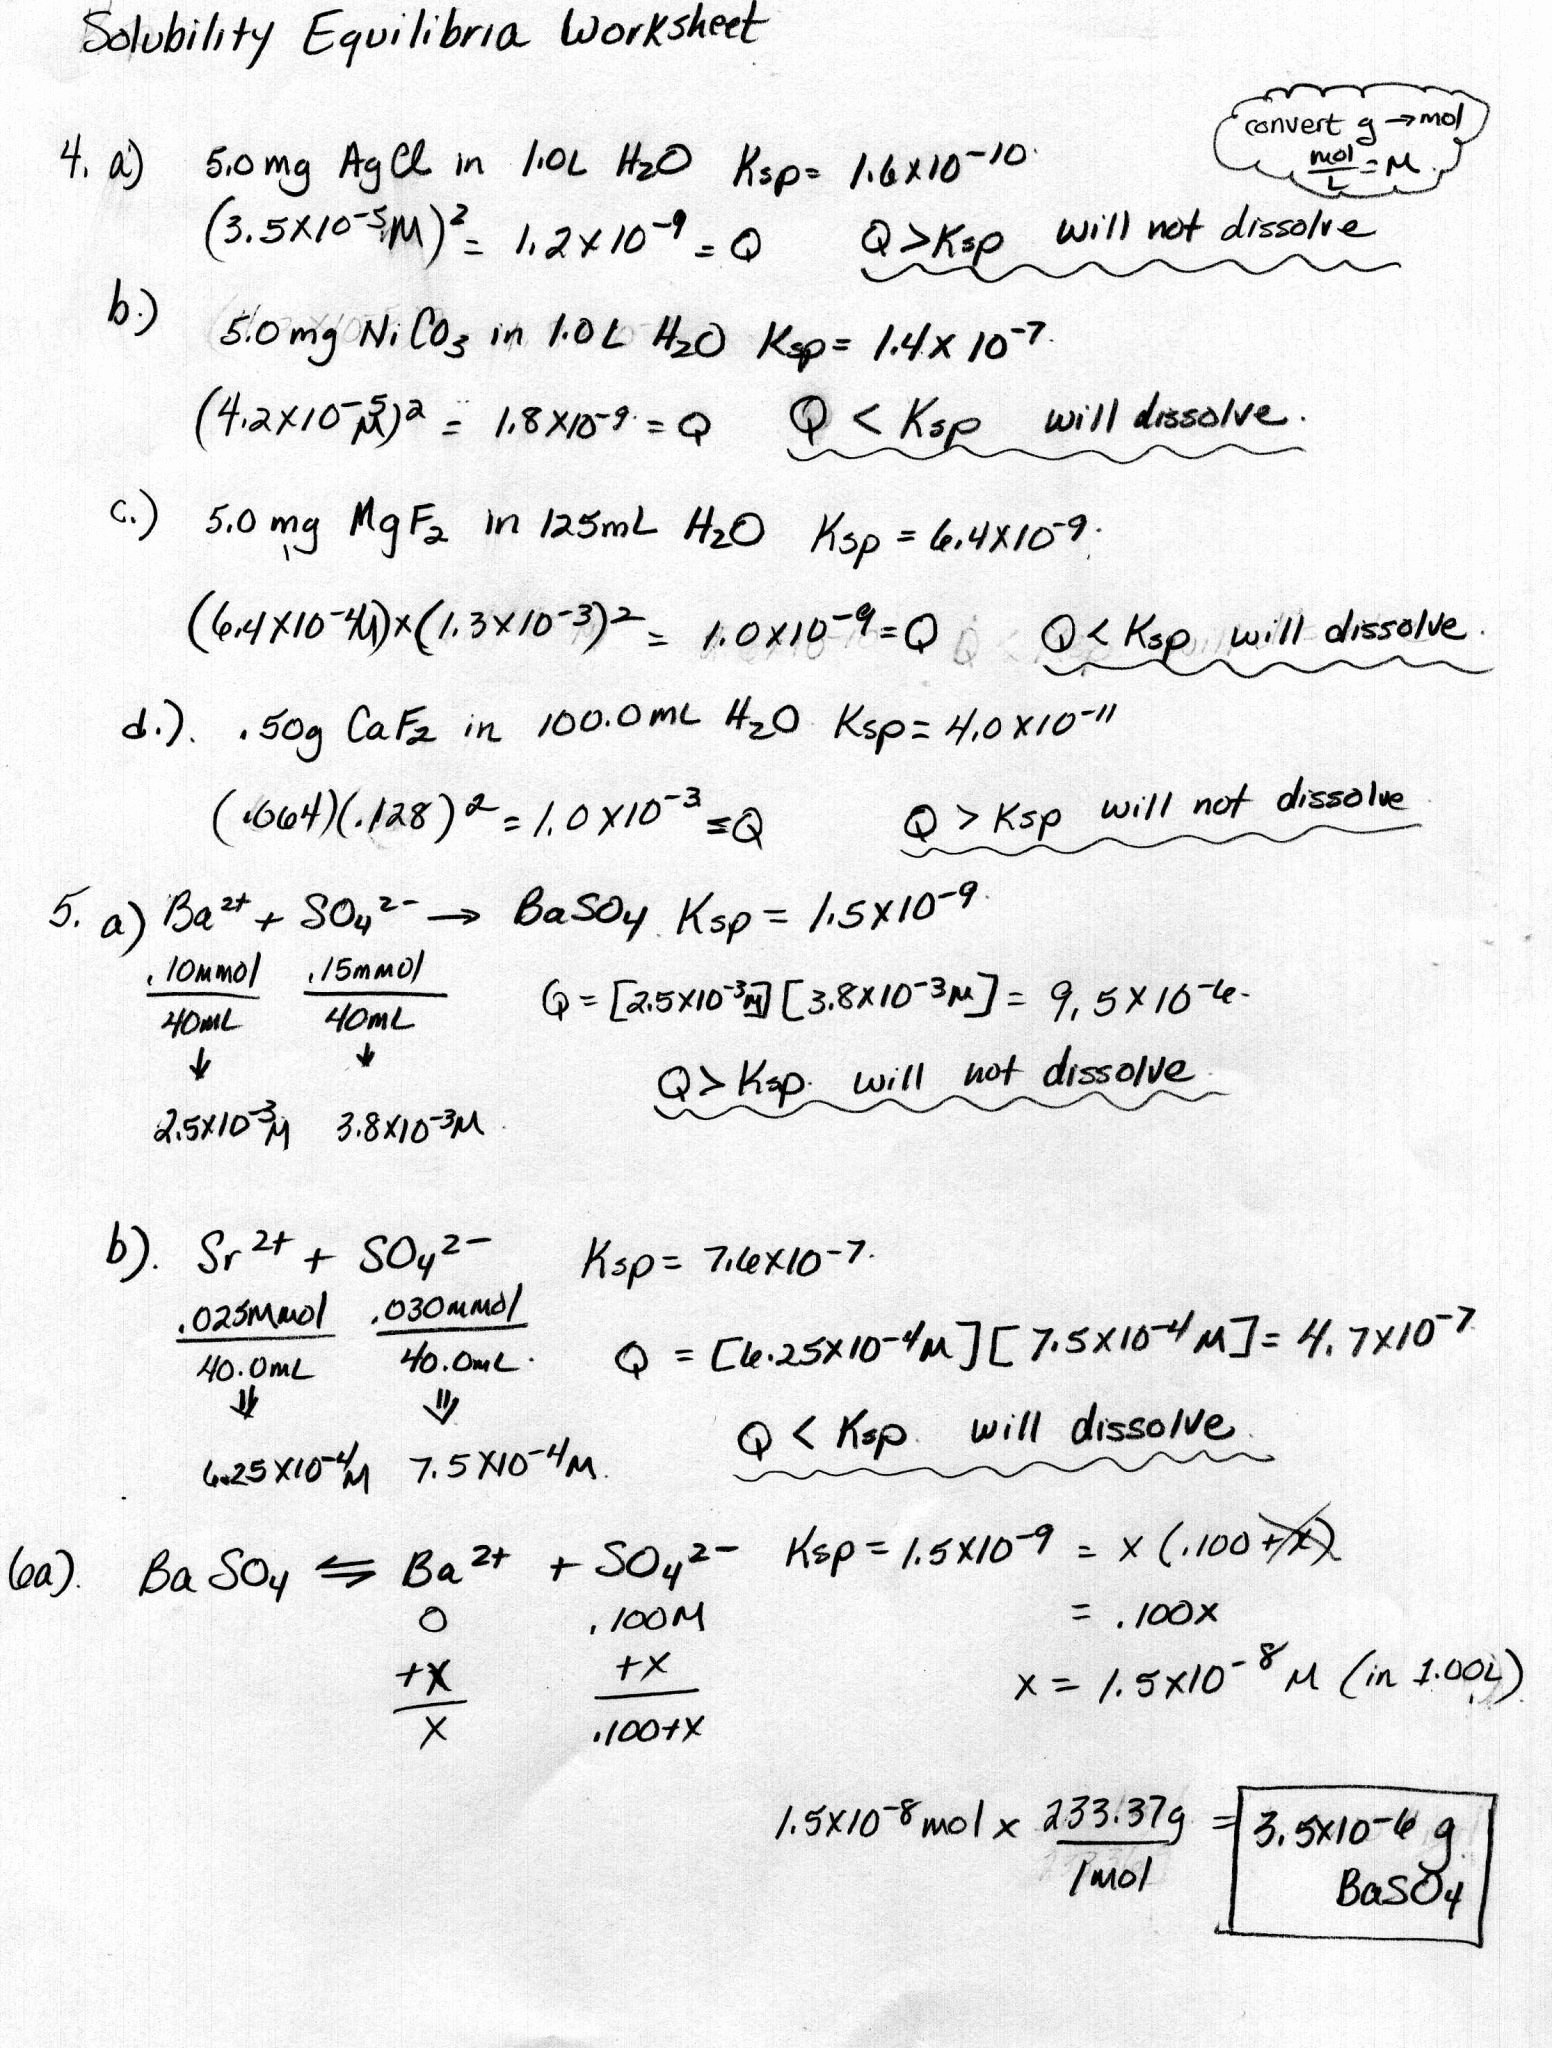 Nuclear Chemistry Worksheet Answer Key New Nuclear Chemistry Worksheet Key